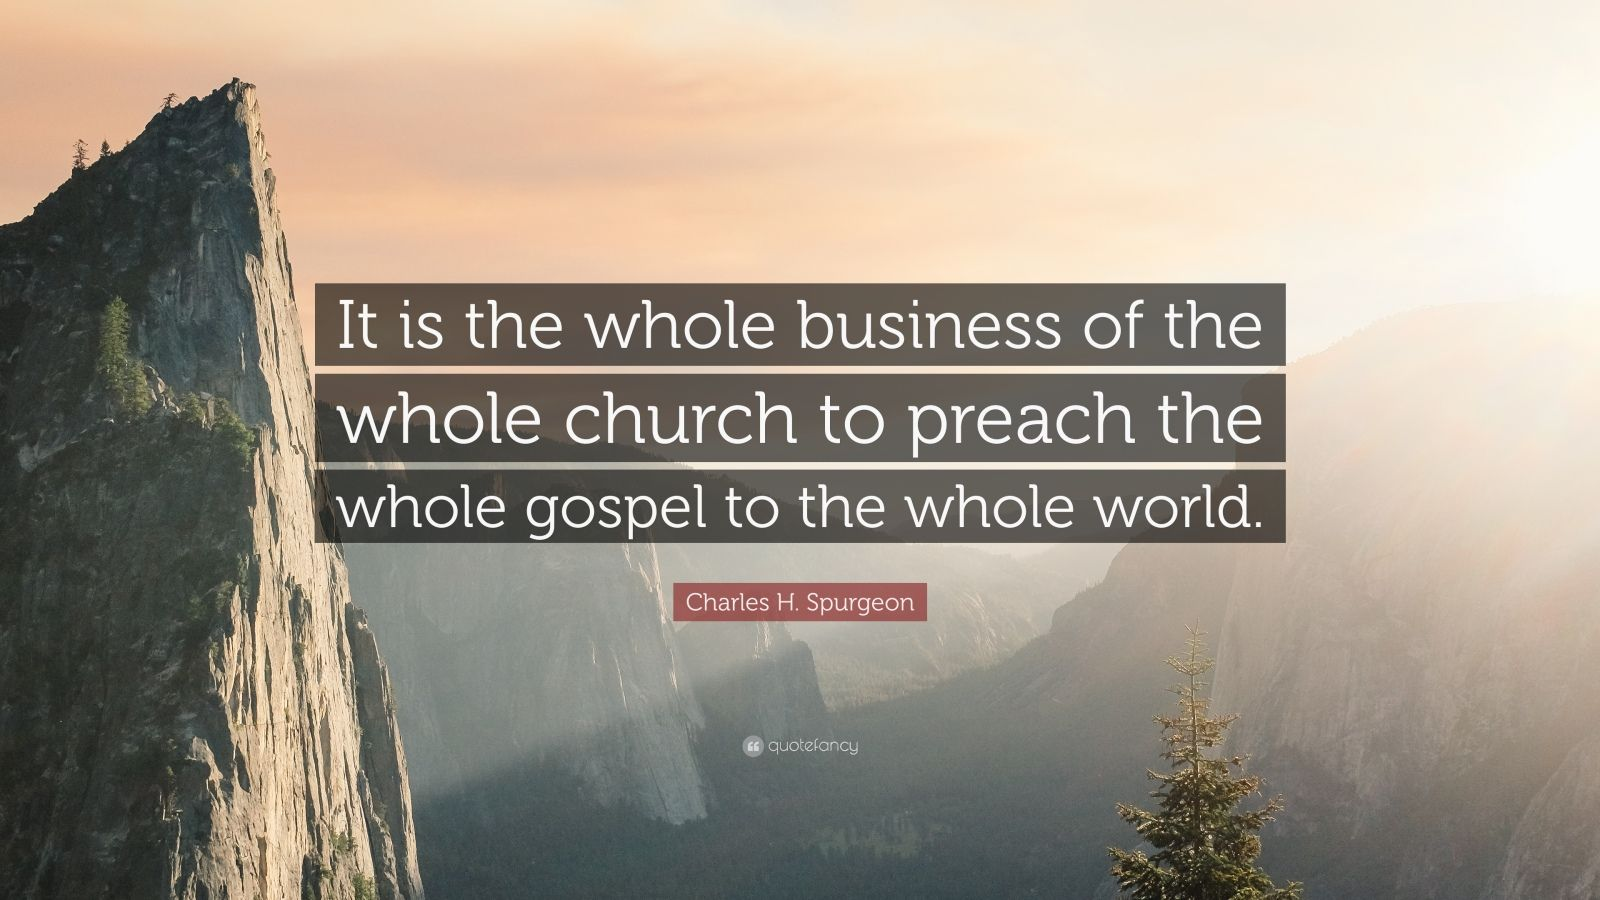 """Charles H. Spurgeon Quote: """"It is the whole business of the whole church to preach the whole gospel to the whole world."""""""